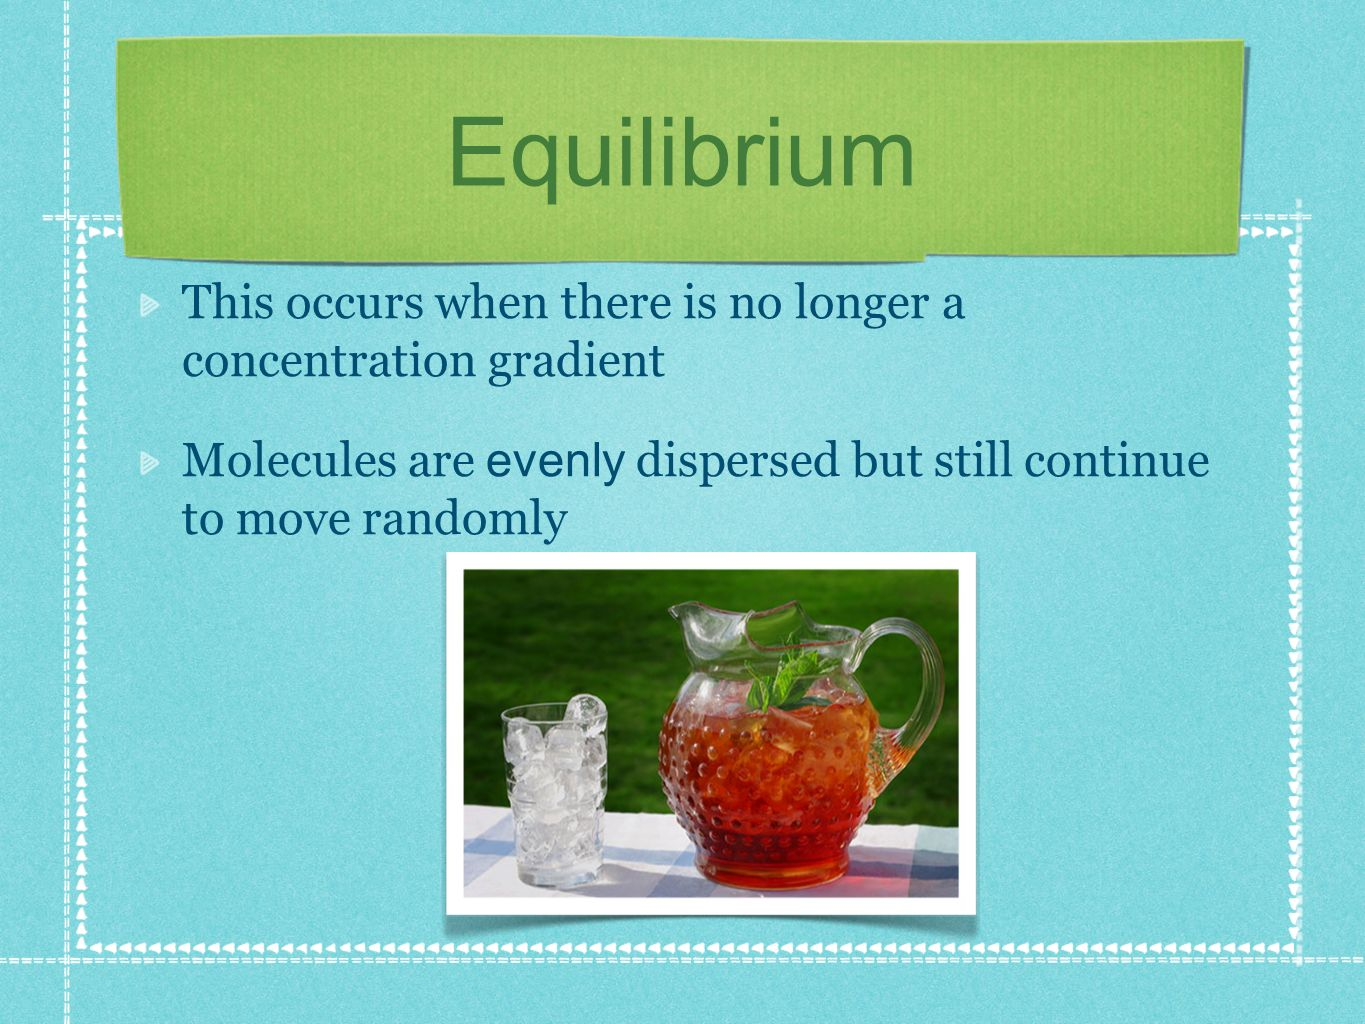 Equilibrium This occurs when there is no longer a concentration gradient.